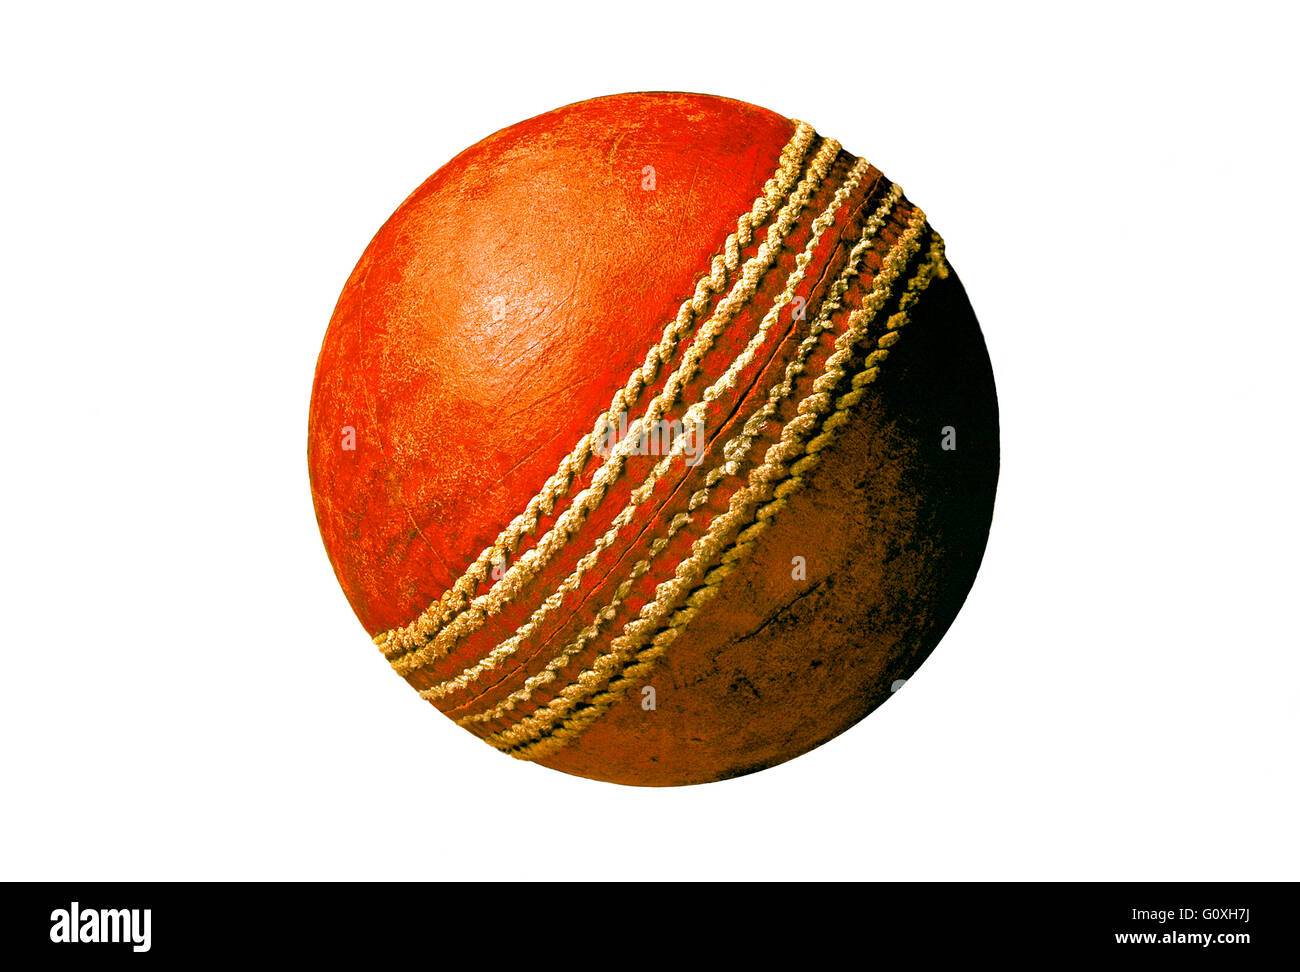 Cricket Ball Red leather old and used cricket ball - Stock Image